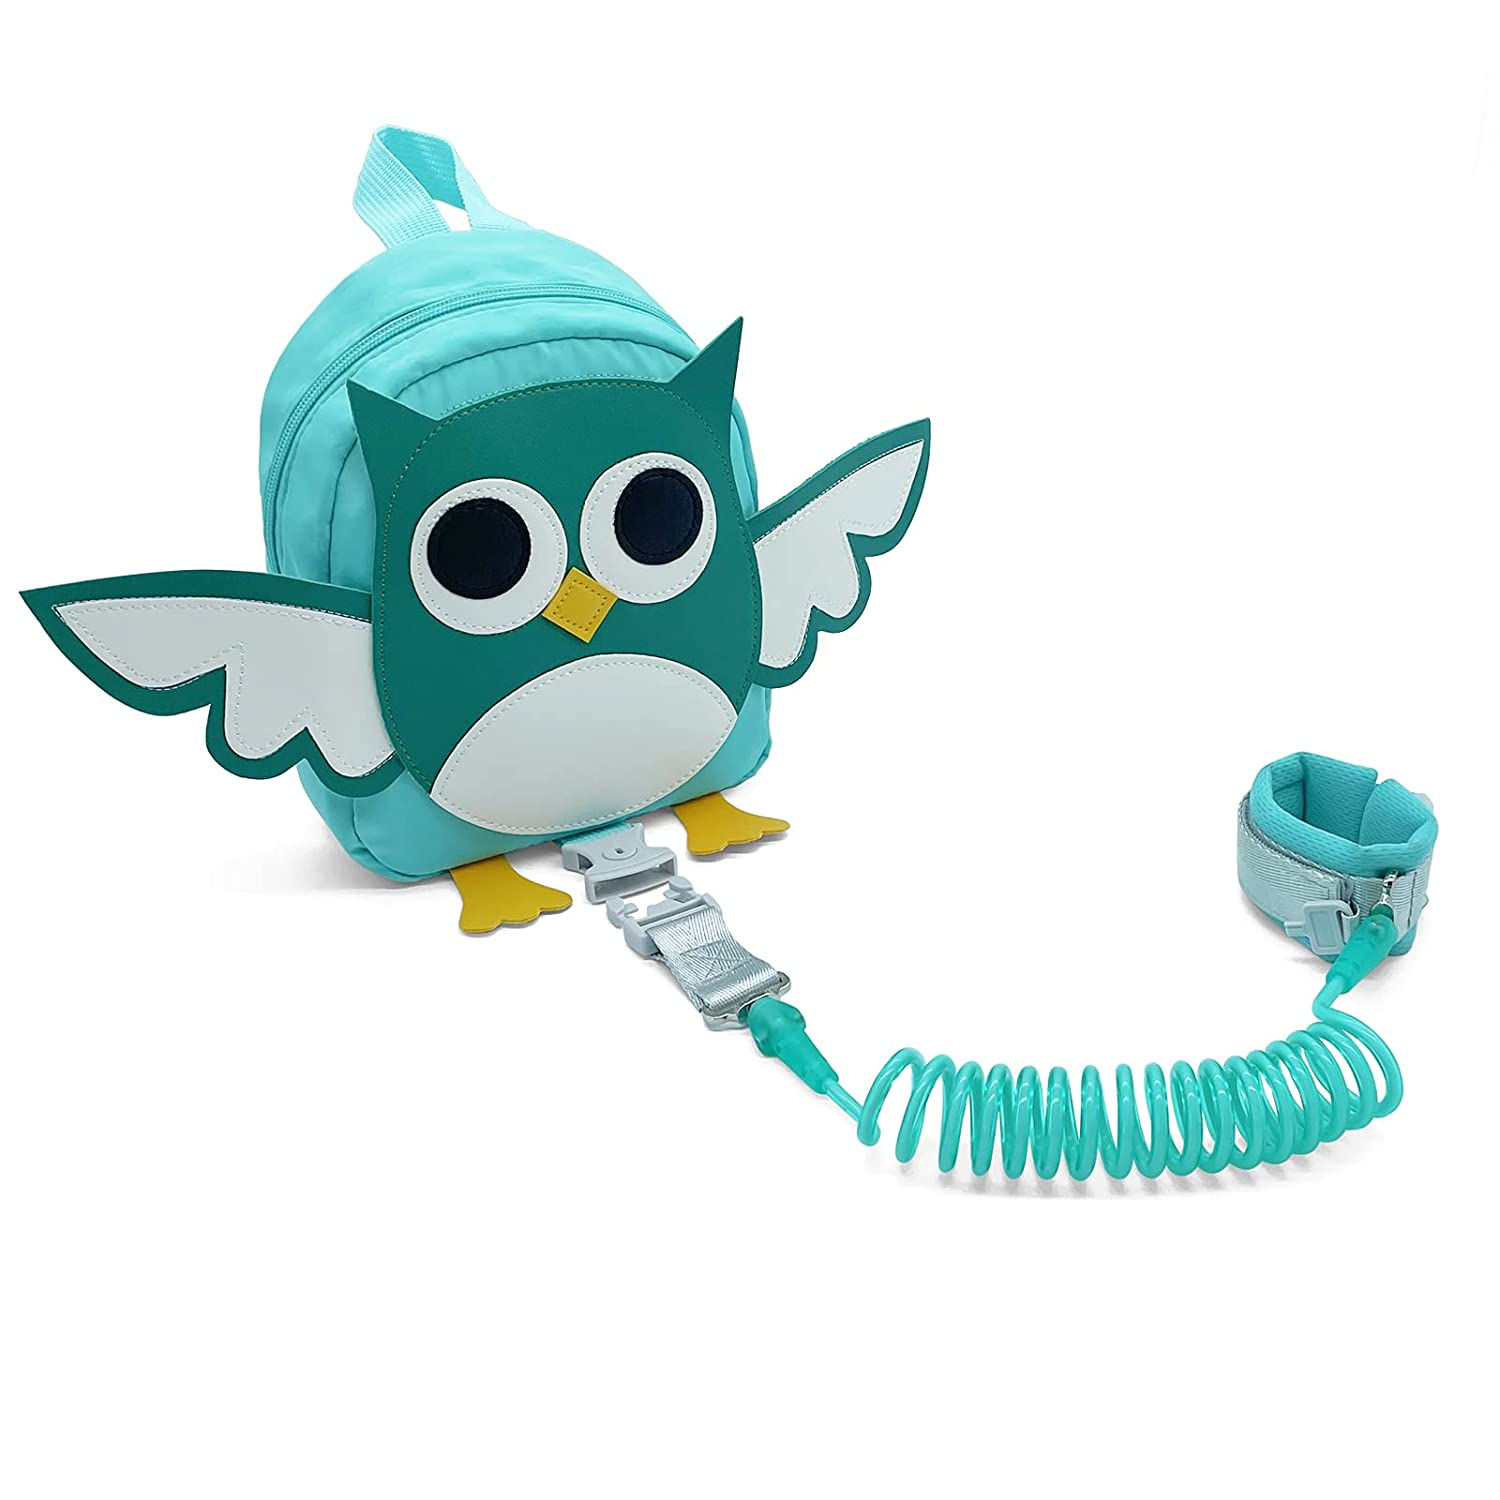 MOSENNY Backpack Leash for Toddlers, Cute Owl Backpack with Safety Leash, Anti-Lost Backpack for Toddlers, Suitable for Boys and Girls (Light Green)